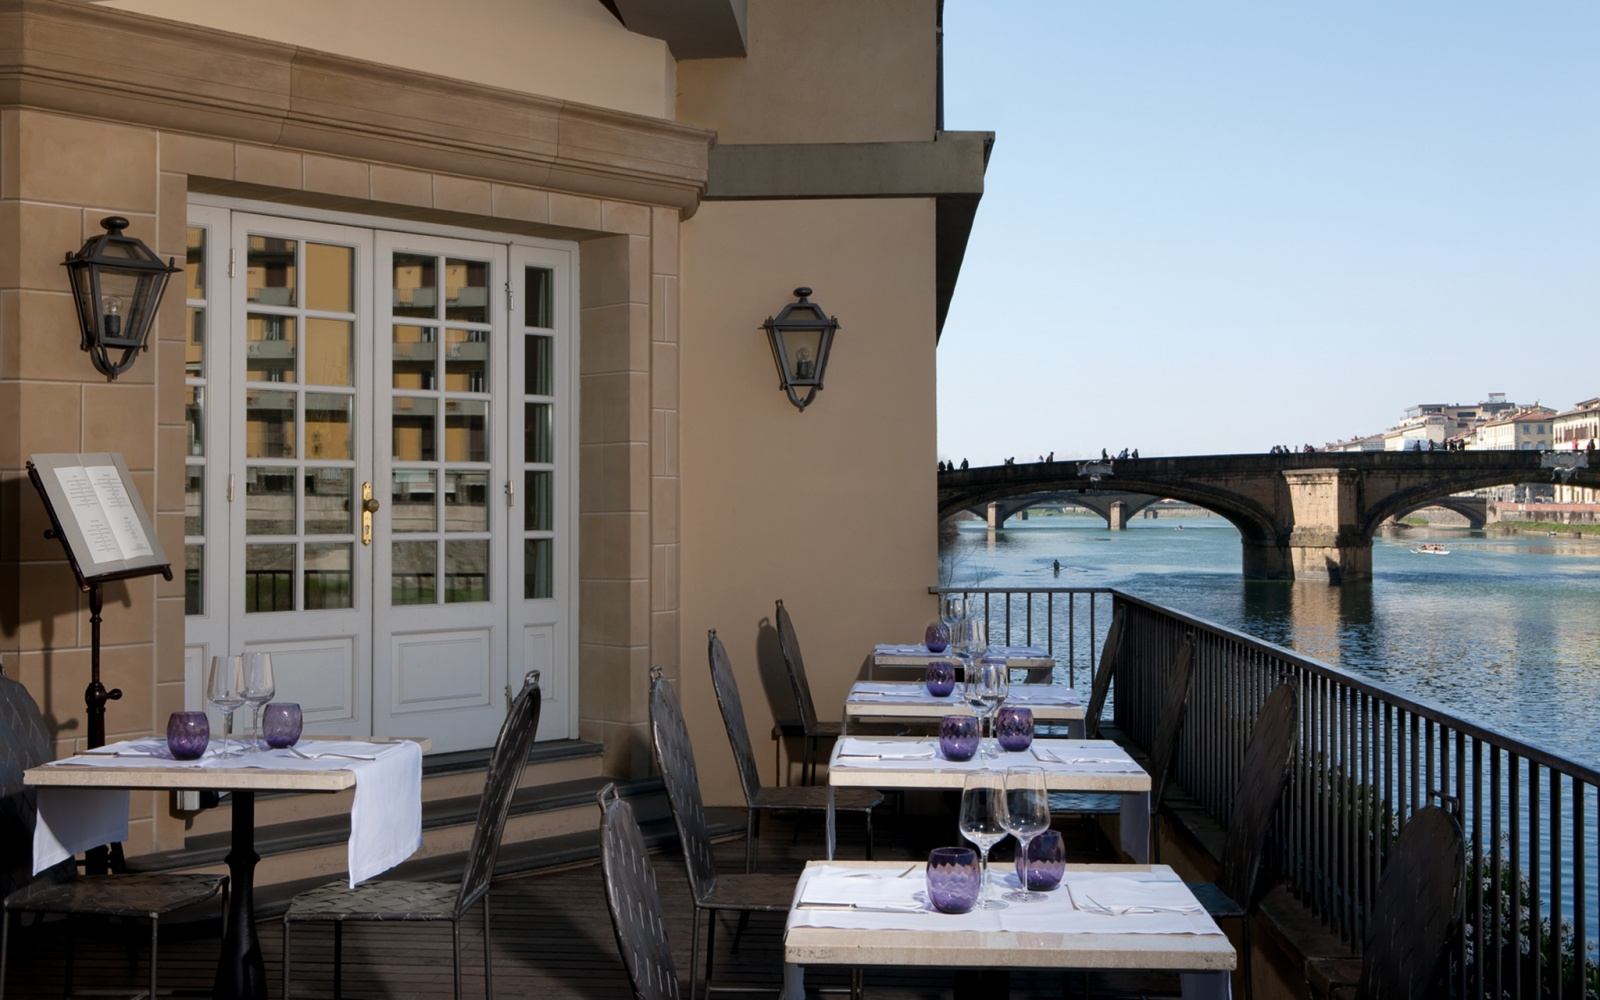 Arno River Florence Italy Hotels